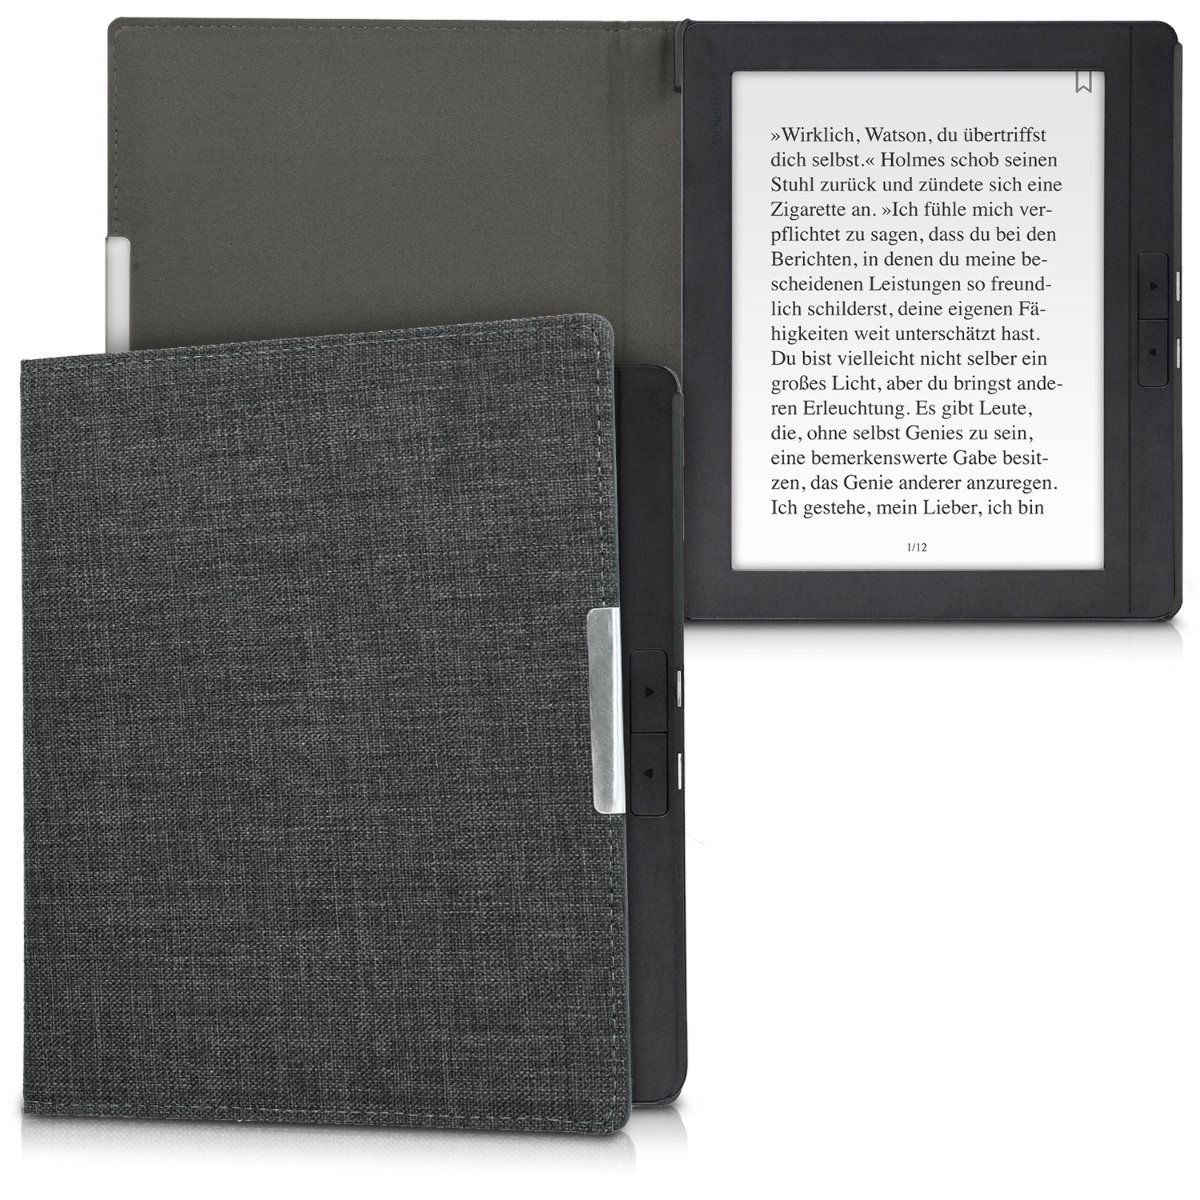 kwmobile Case for Pocketbook InkPad 2 - Book Style Fabric Protective e-Reader Cover Flip Folio Case - dark grey